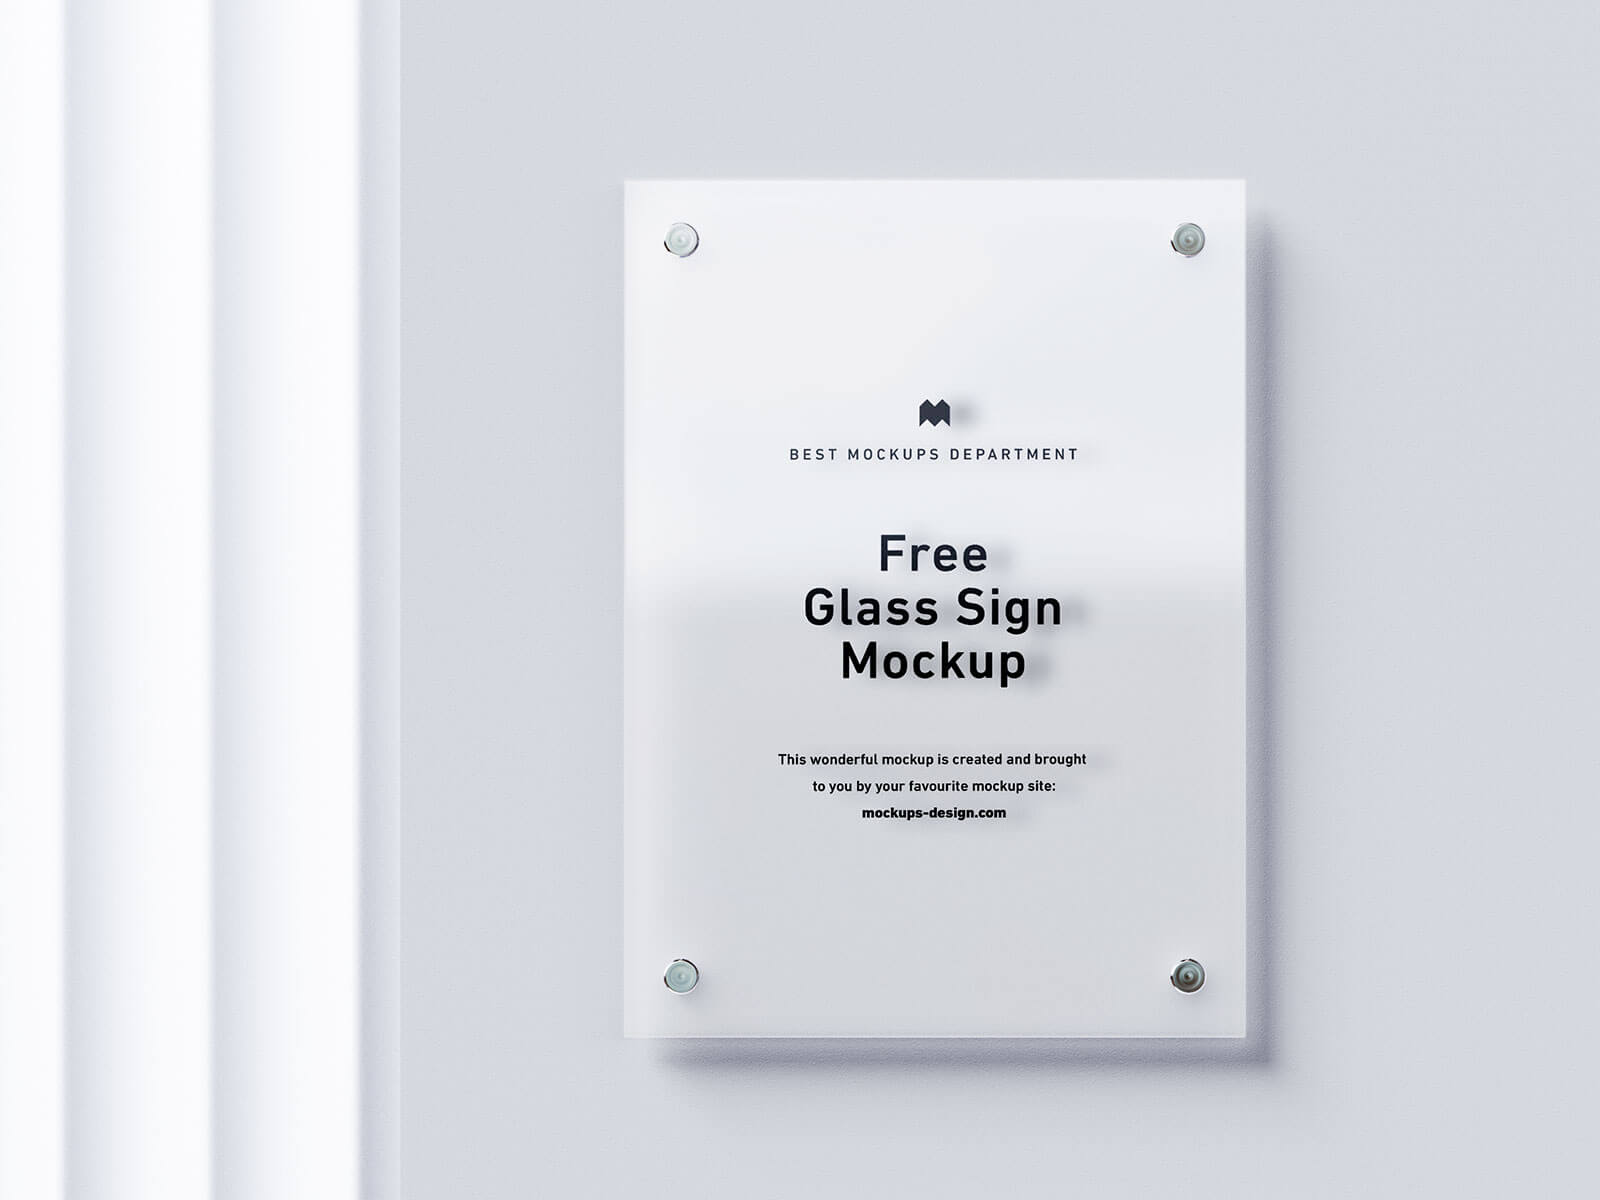 Free Wall Mounted Etched Glass Sign Mockup PSD Set